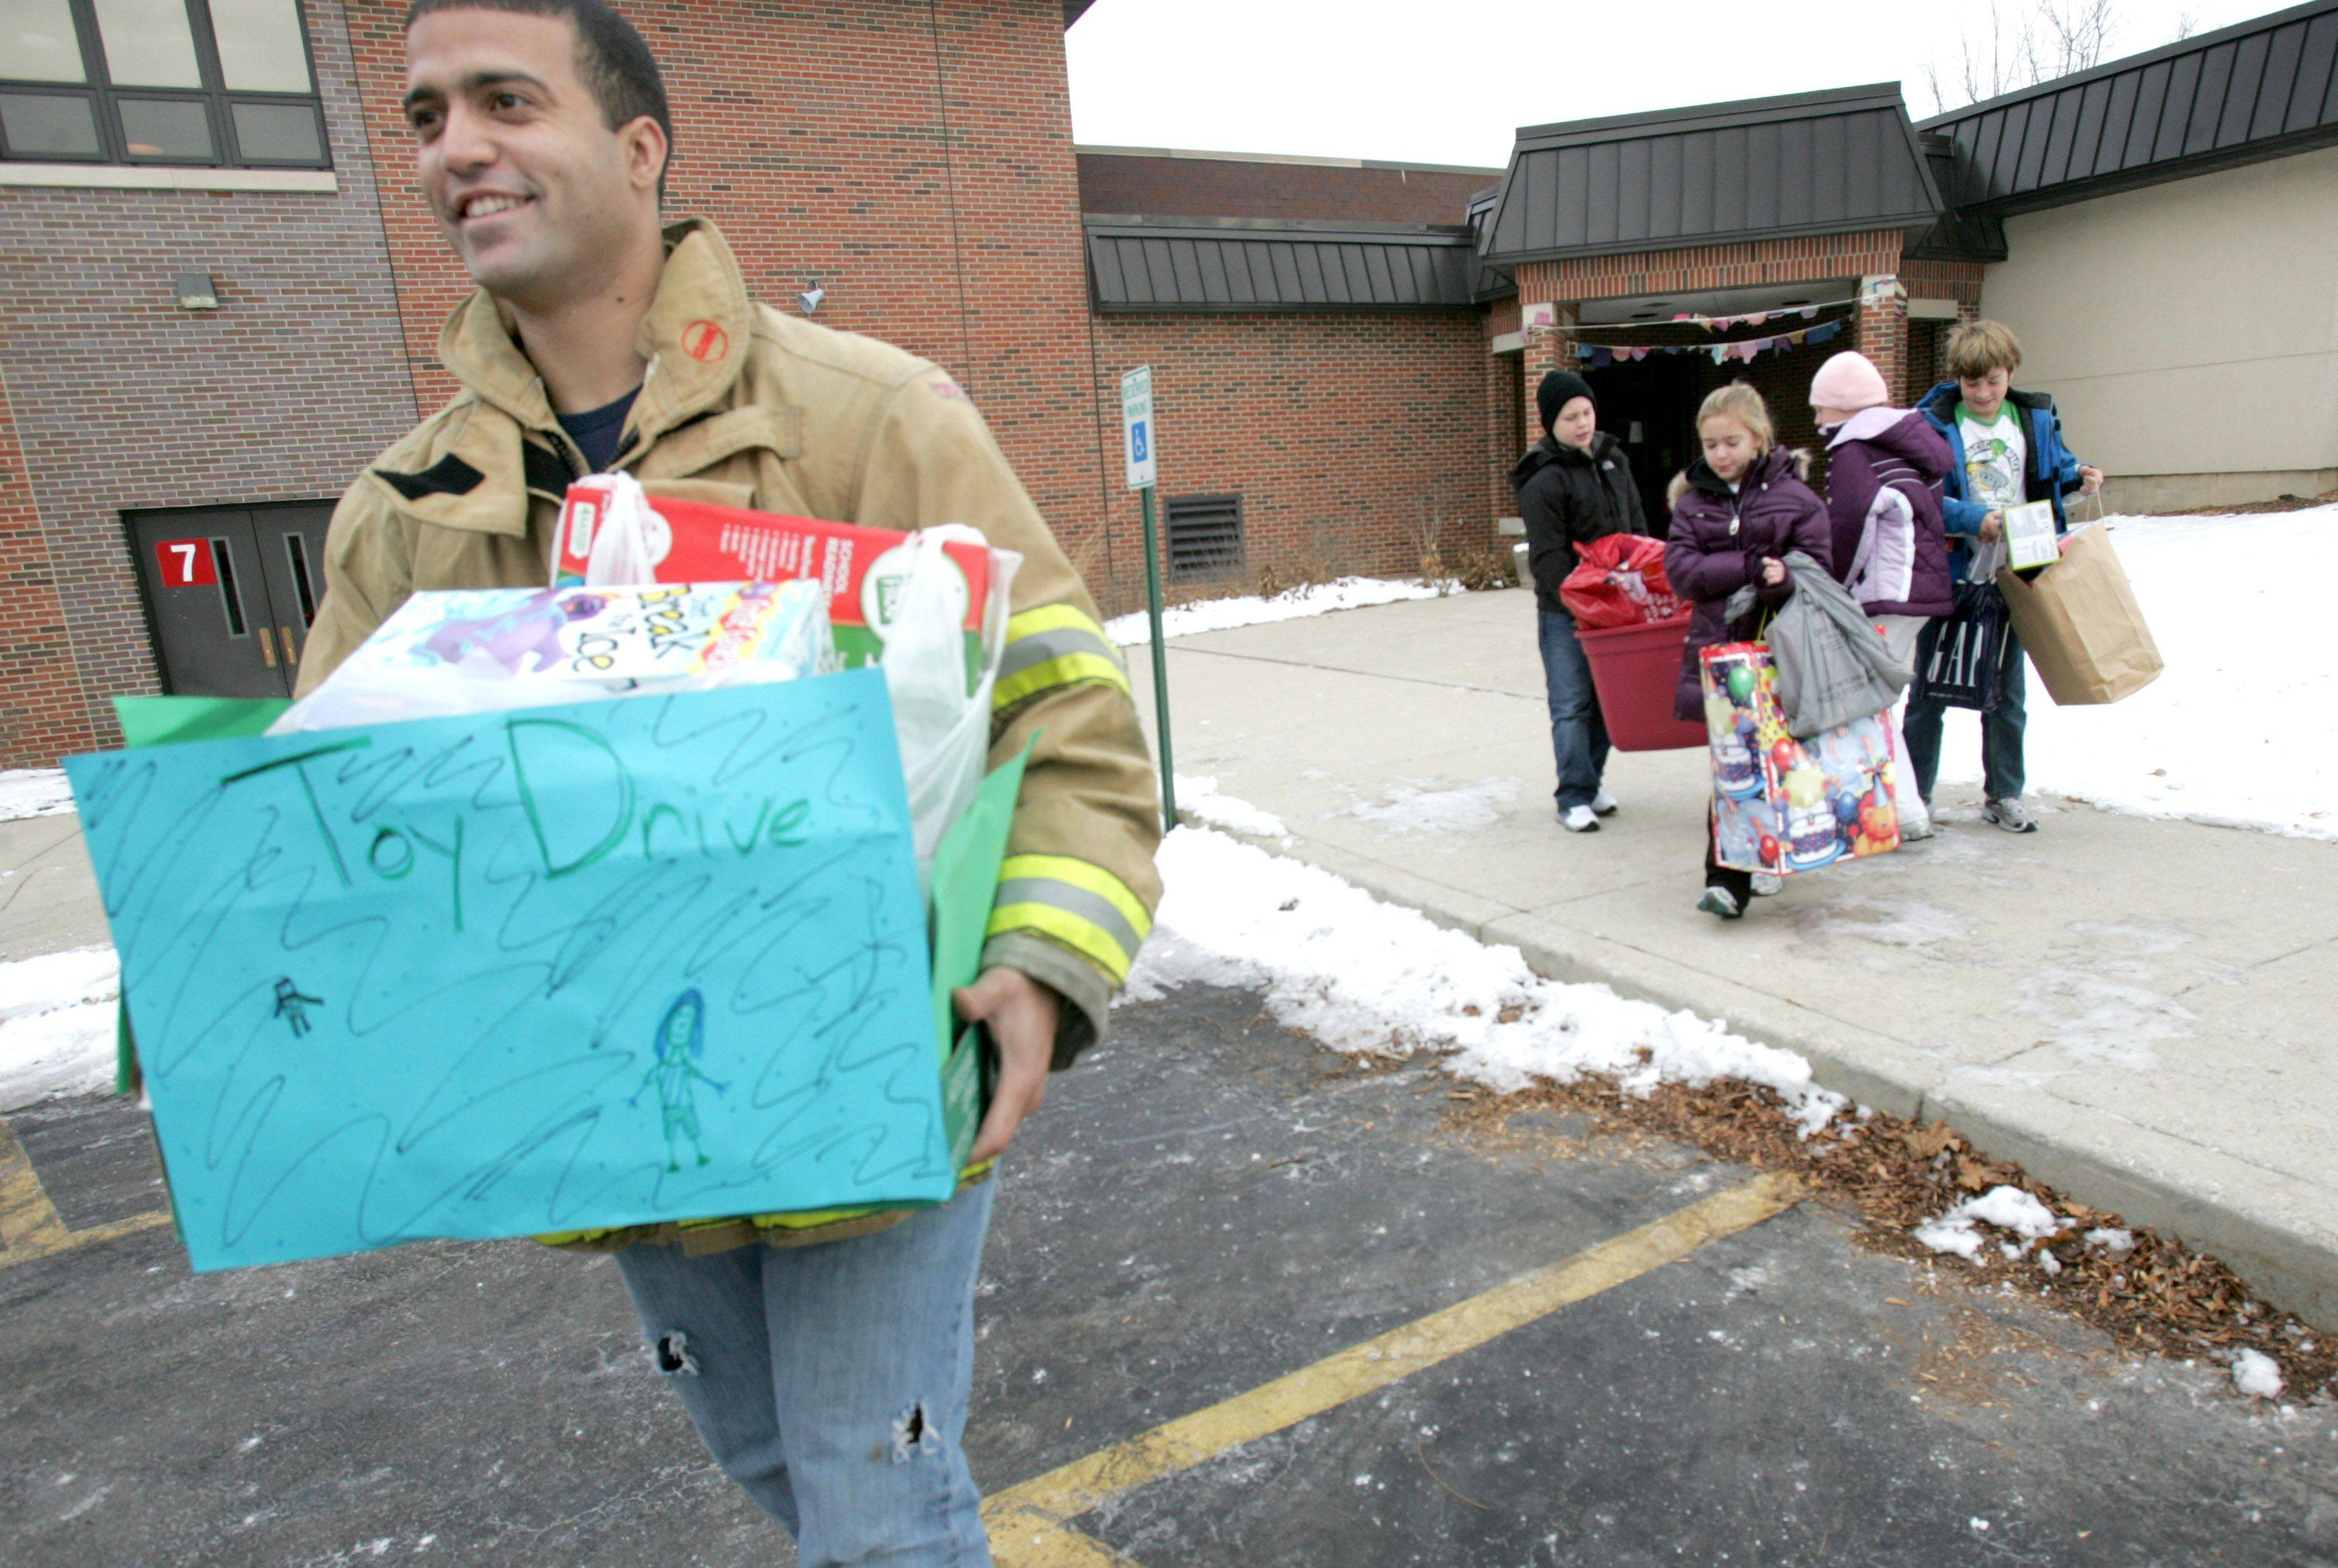 "Lombard firefighter/paramedic Josh Hays picks up toys from Pleasant Lane Elementary in Lombard. Left to right are student council members Thomas Batka, Josilin Johnson, Alexis Weltin, and Avyn Alairys helping bring out the toys. The toys will be taken in the toy parade on Saturday to Yorktown Center, where they will then be part of the toy drive. ""I think it's going to a good cause"", said fifth-grader Joslin Johnson, president of the student council. All members of the student council agreed it's better to give the toys to charity, then having them sit around at home unused. The school collected over 100 books and toys for the drive this year."